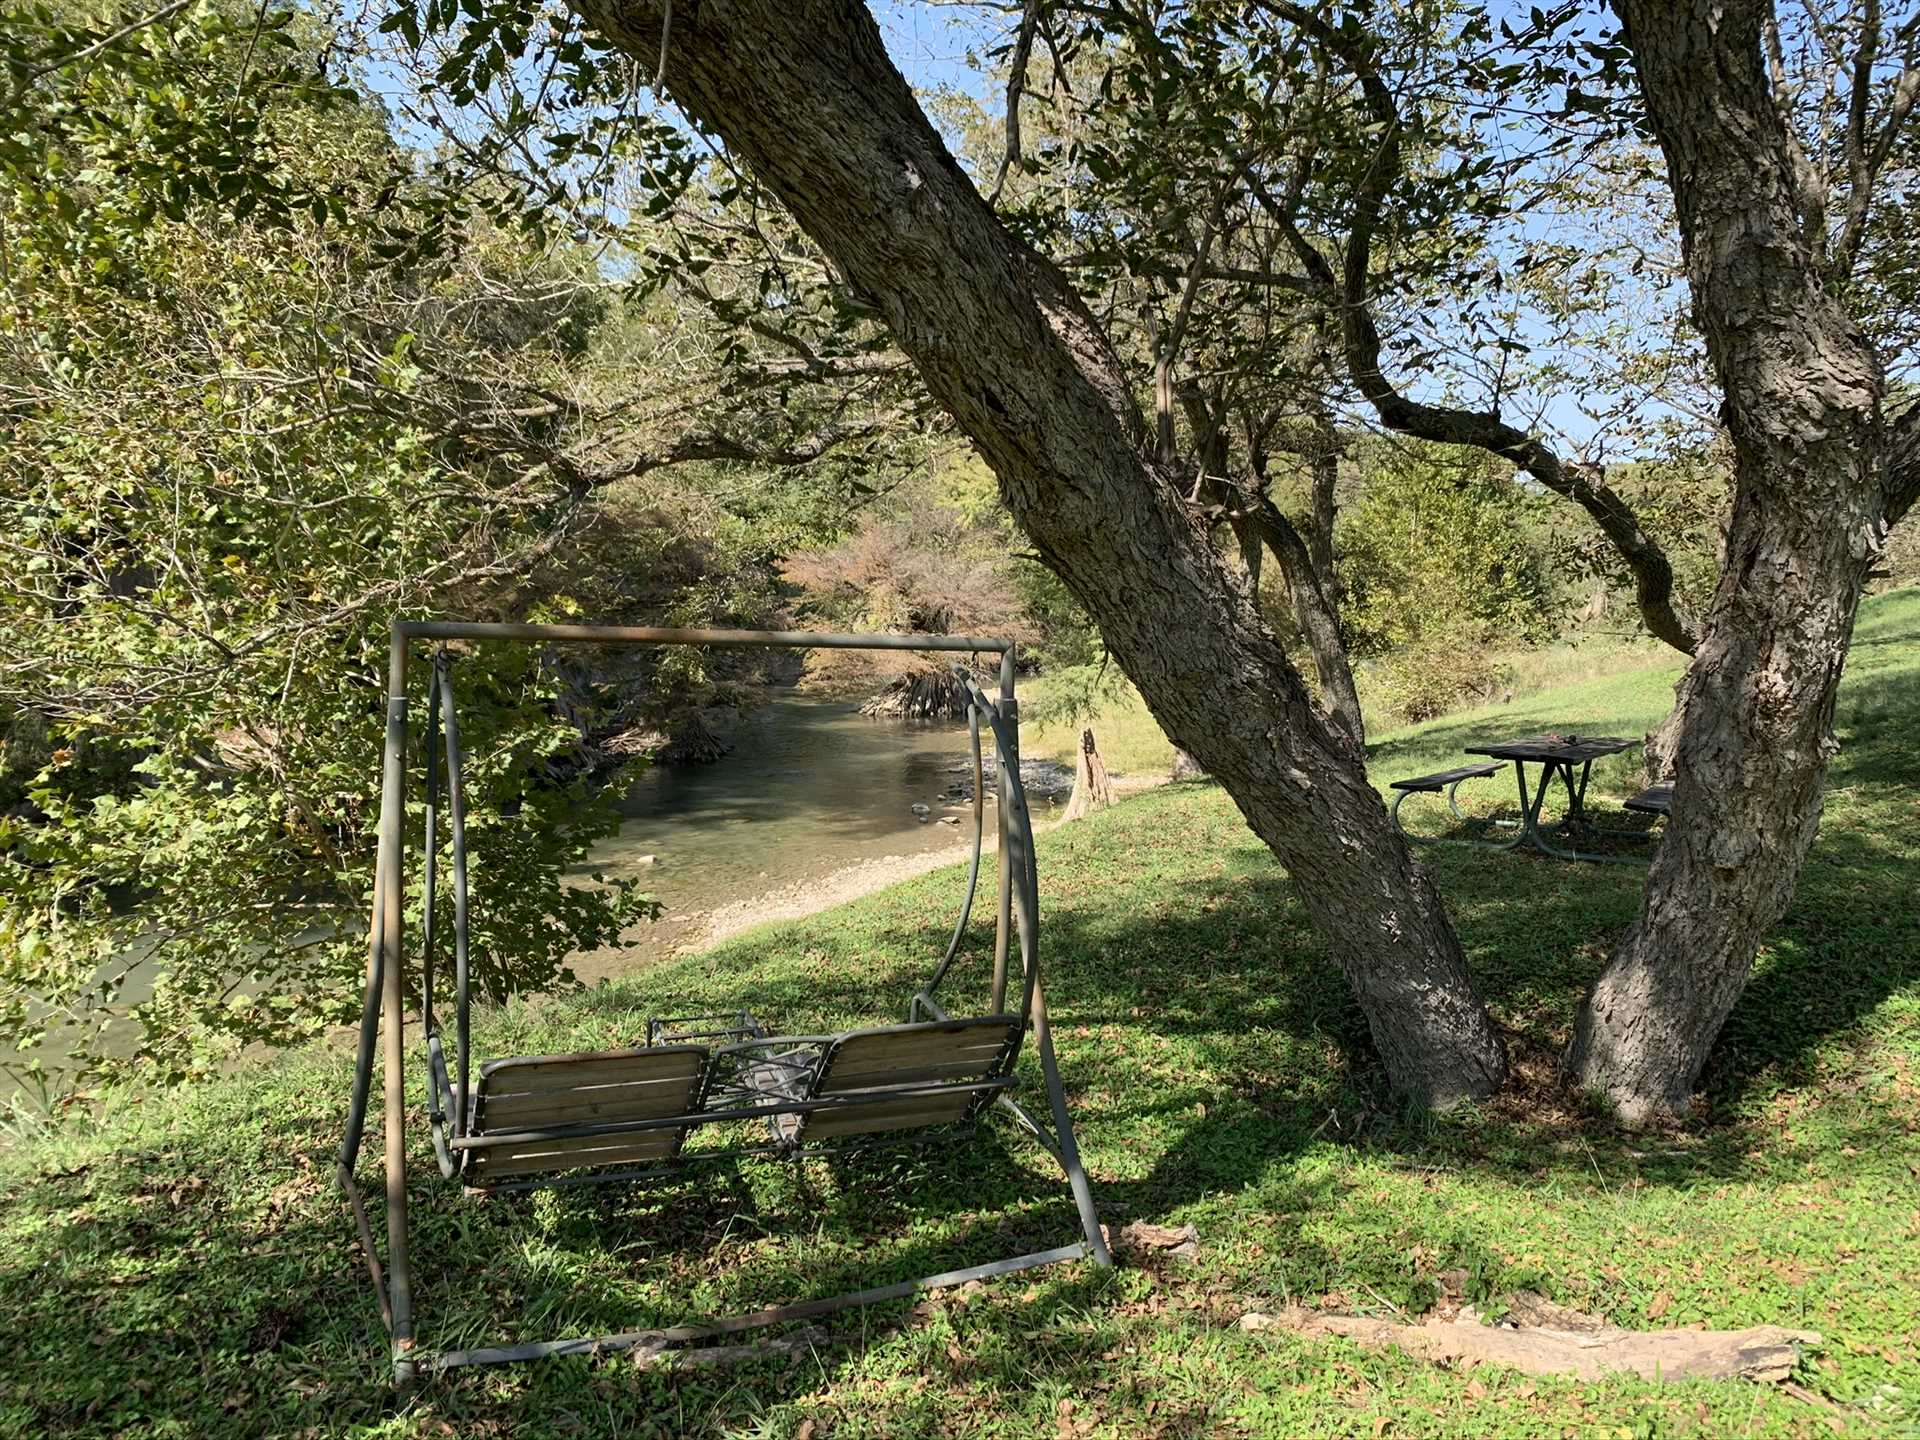 Swing in the shade with that special someone! It's a great place to sip a glass of Texas wine alongside the peaceful river.